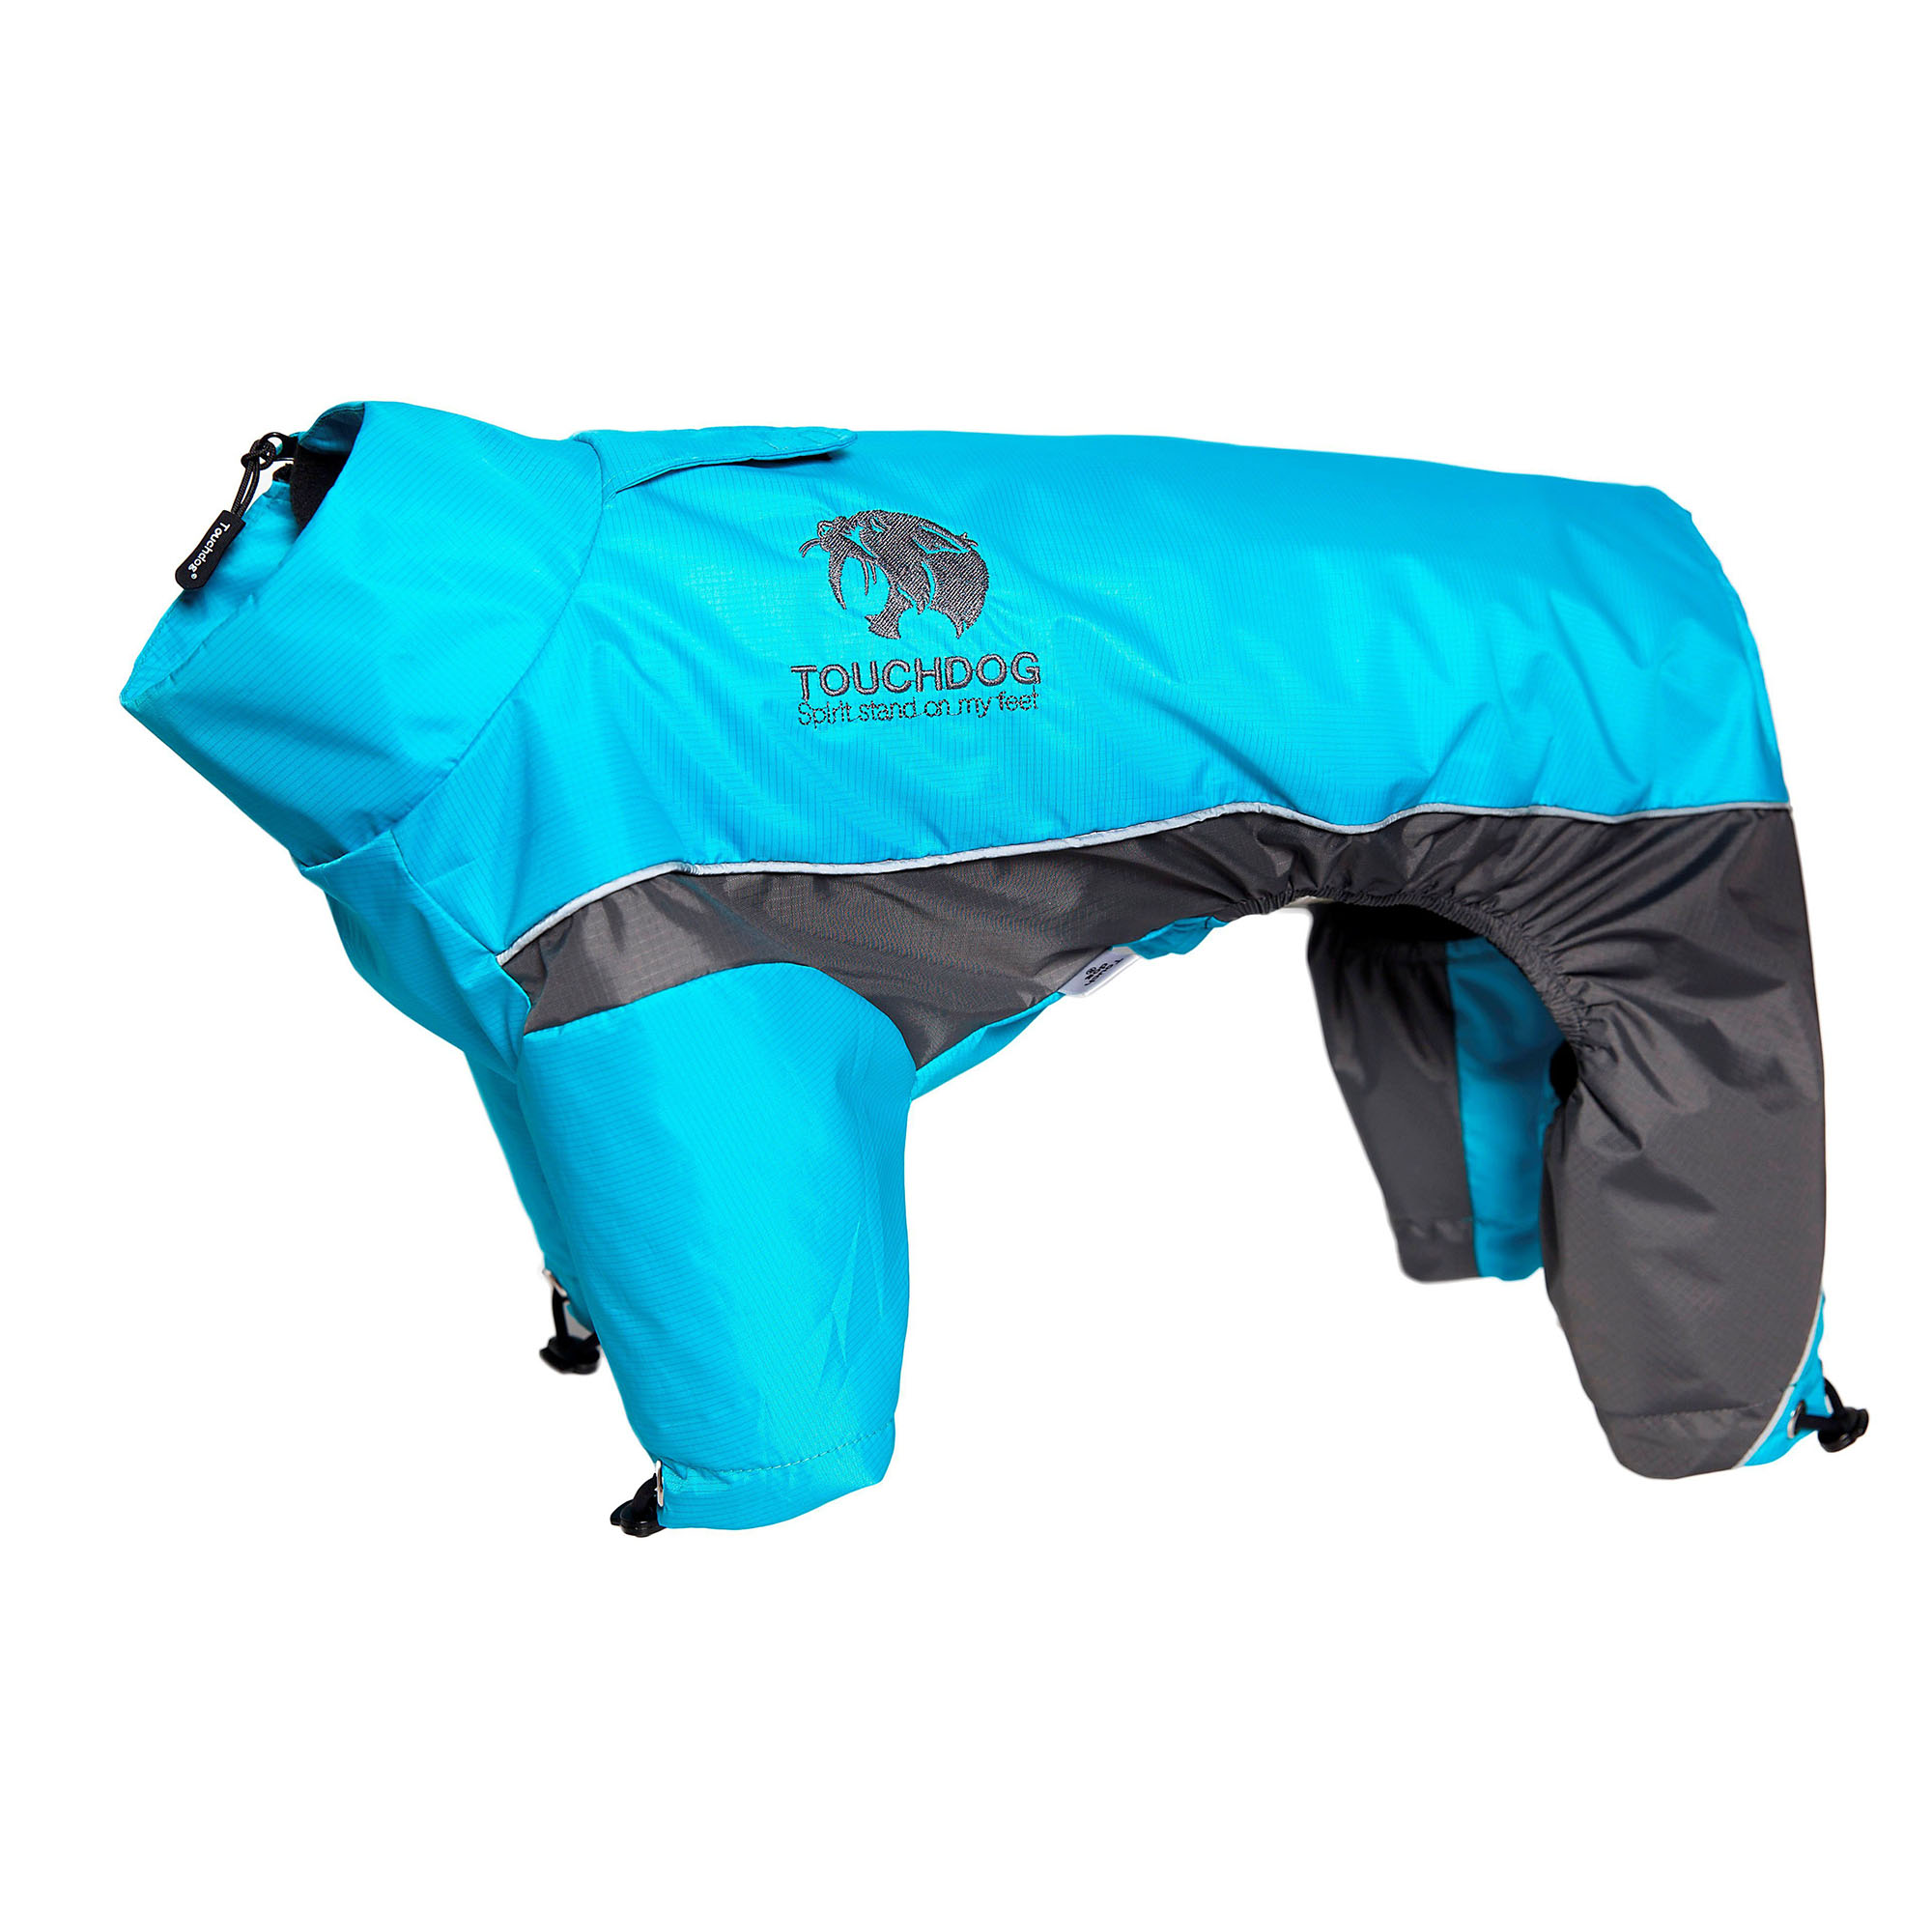 Touchdog Quantum-Ice Full-Bodied Adjustable and 3M Reflective Dog Jacket w/ Blackshark Technology, Ocean Blue-Grey Large (812131035154 Lifestyle Pet Pet Apparel T-Shirts & Jackets) photo